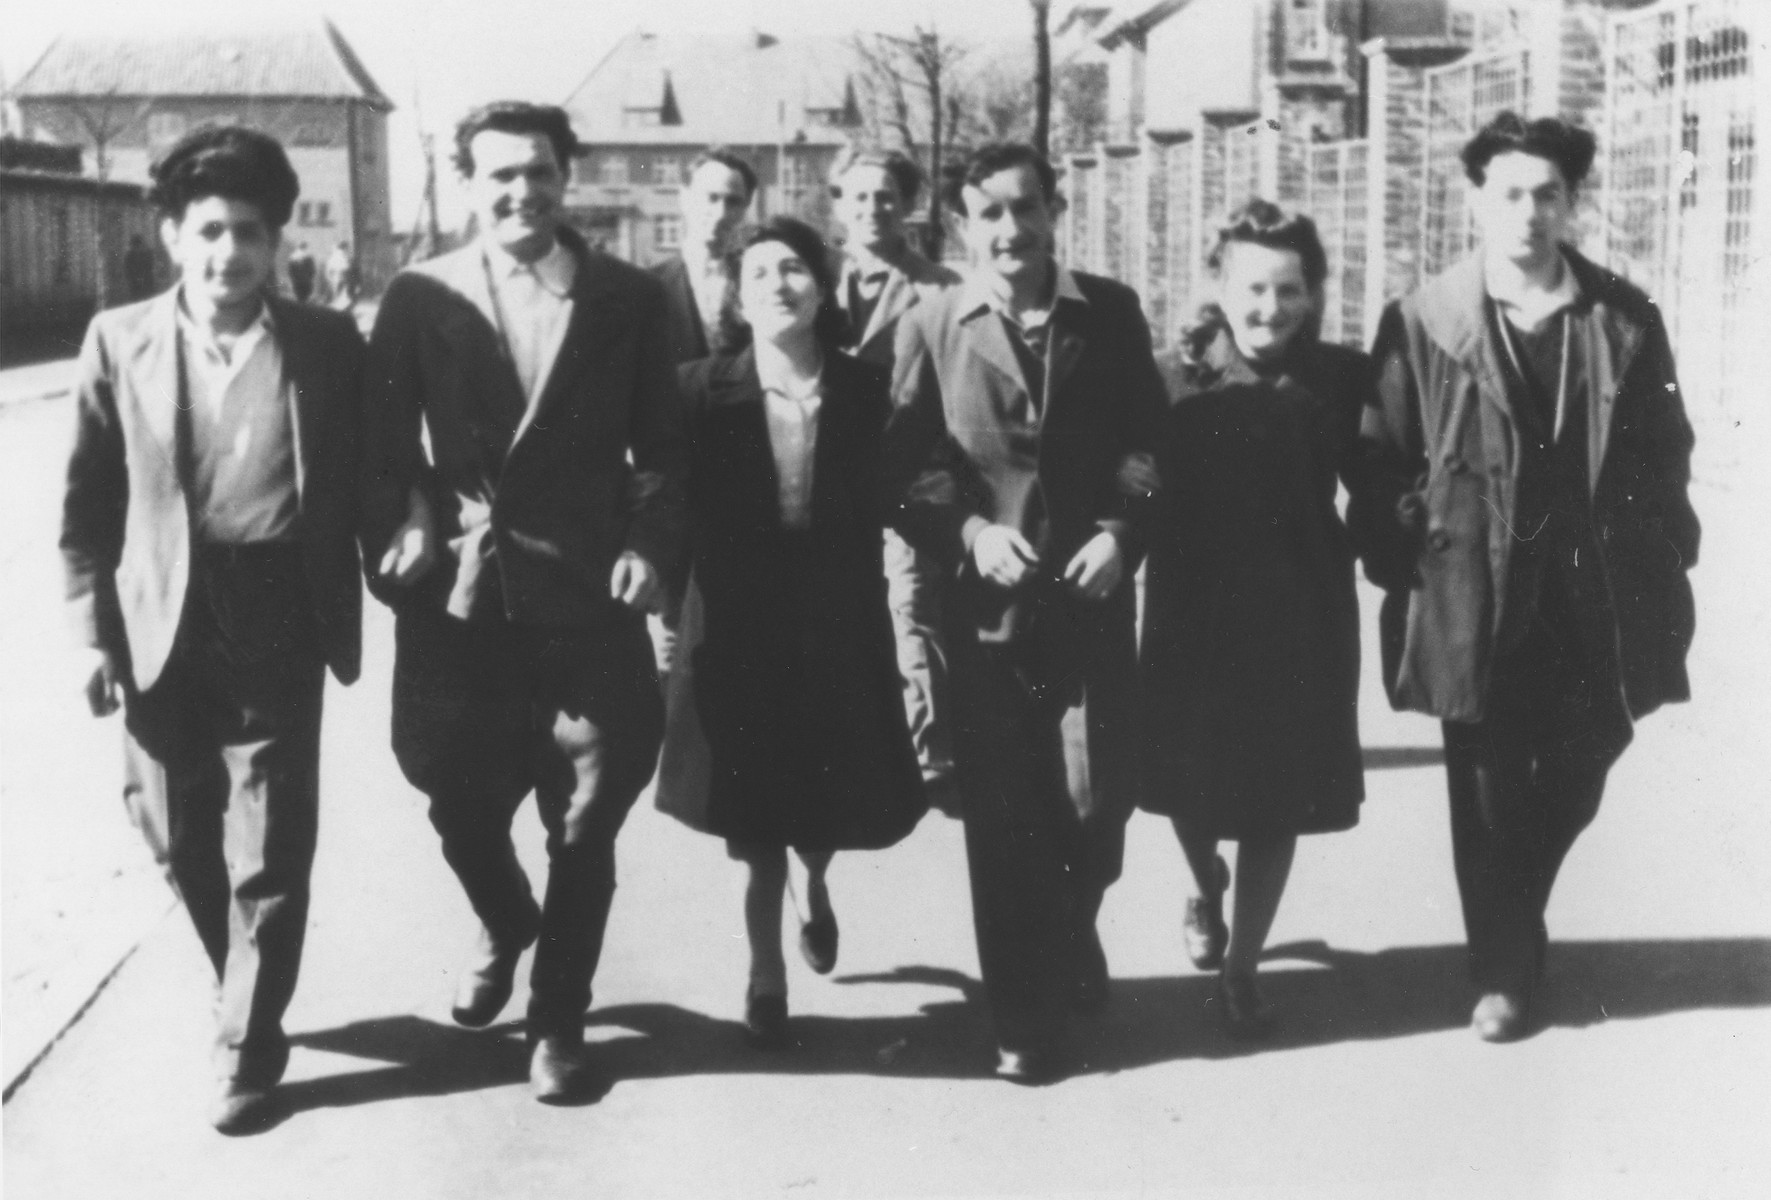 Former passengers of the Exodus 1947 and friends from the Emden displaced persons camp stroll along a city street.